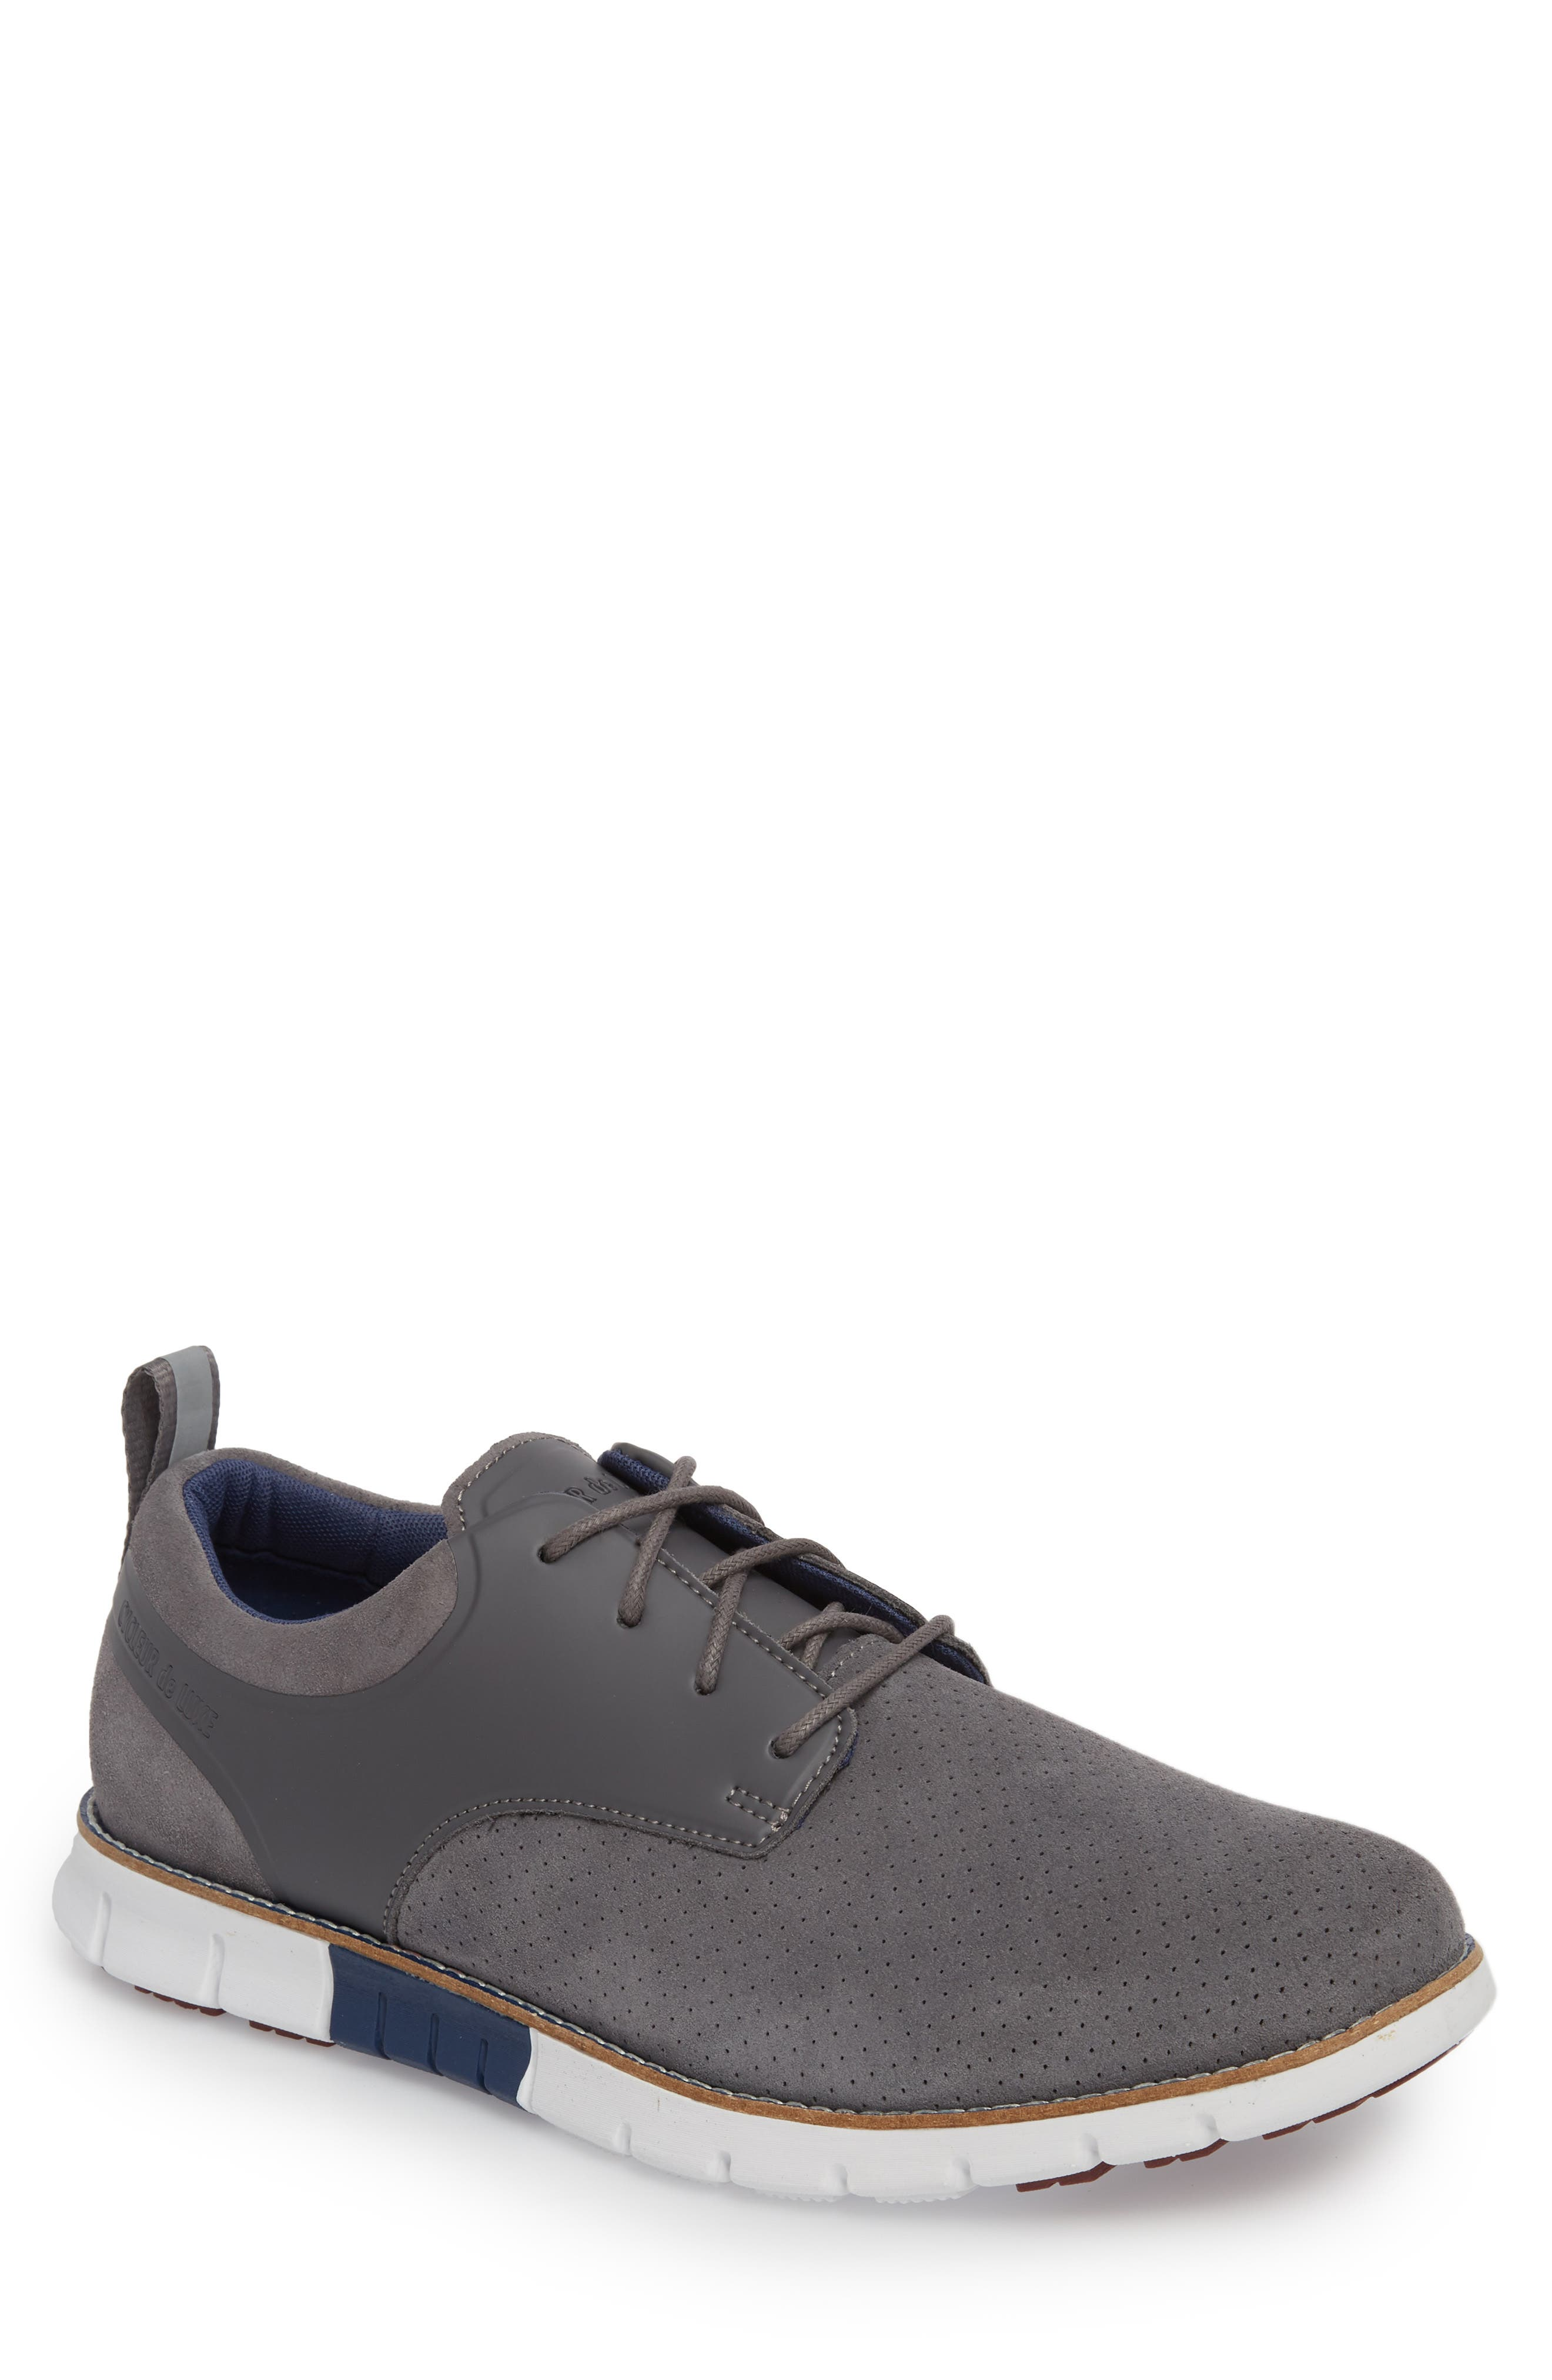 Ridley Perforated Low Top Sneaker,                         Main,                         color, 020